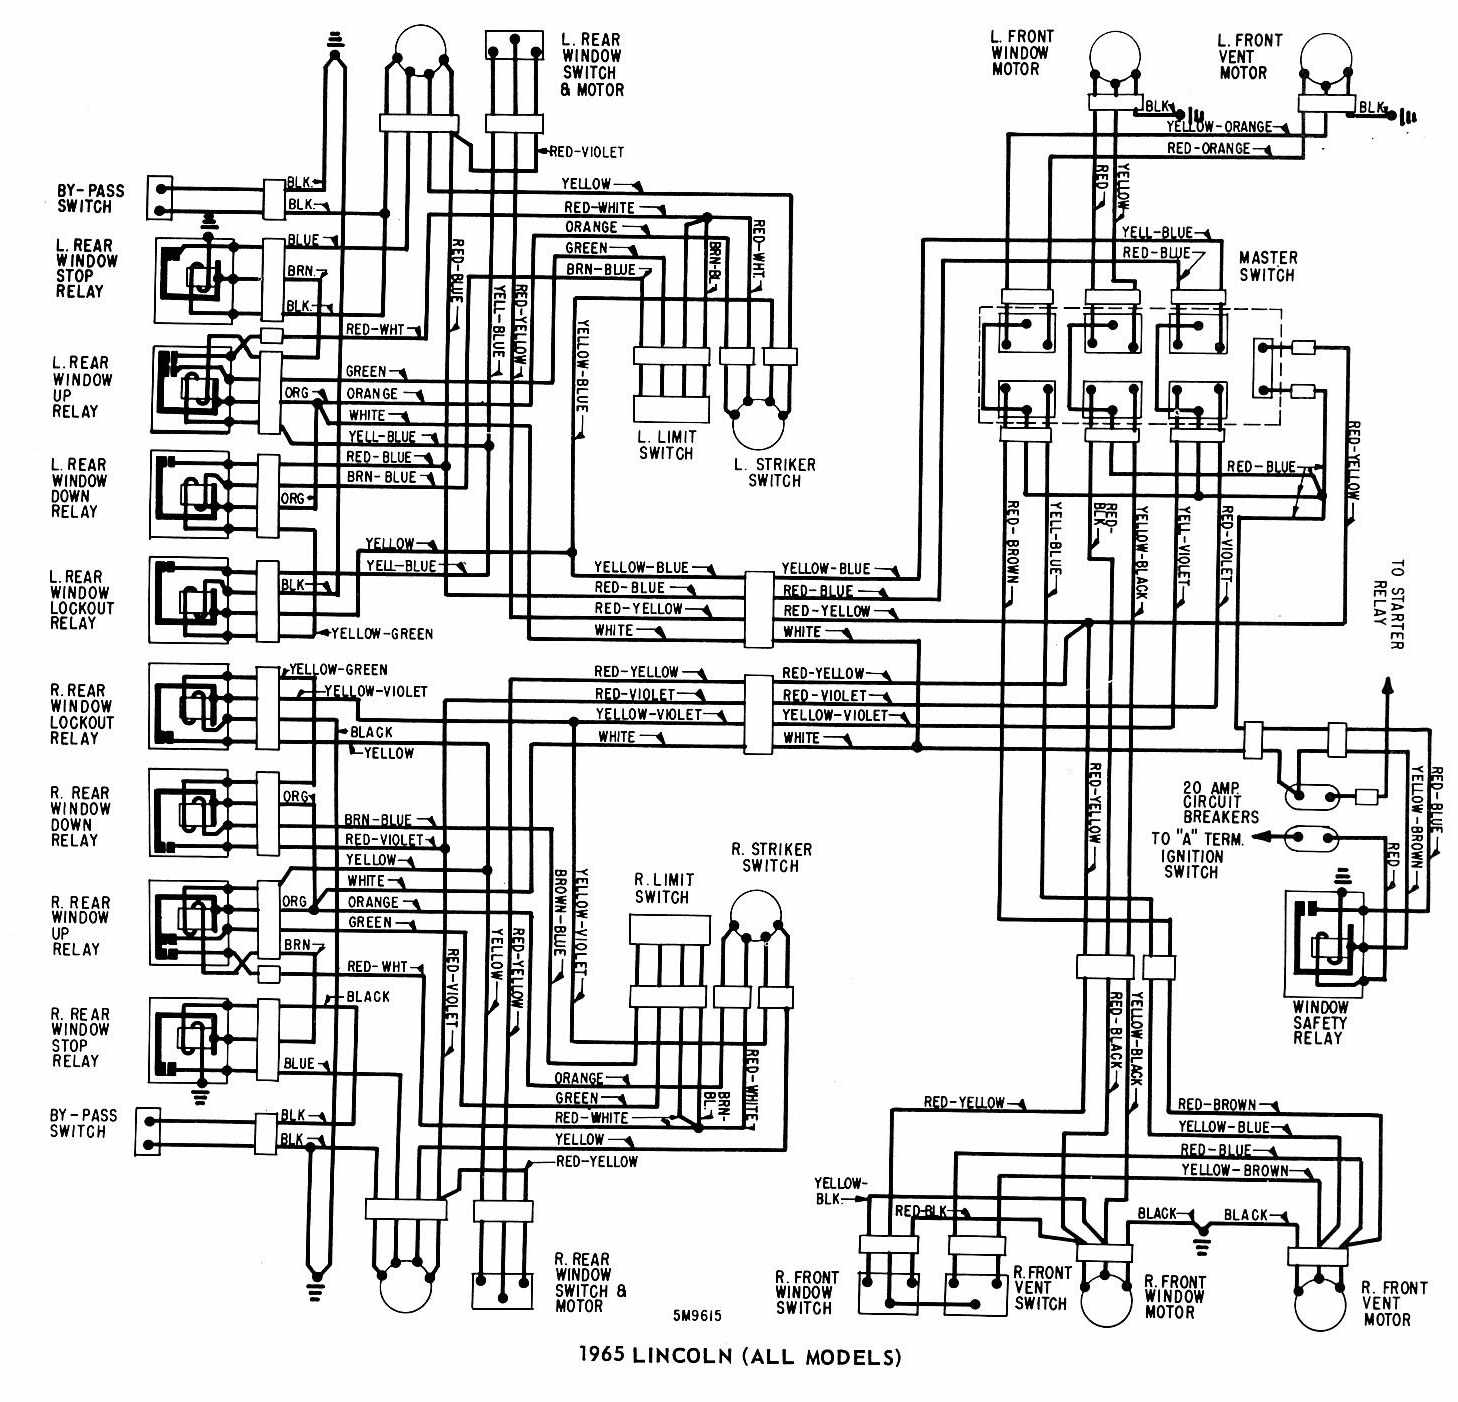 69 Thunderbird Wiring Diagram Online 1968 Firebird Schematics 1969 Lincoln Just Another Blog U2022